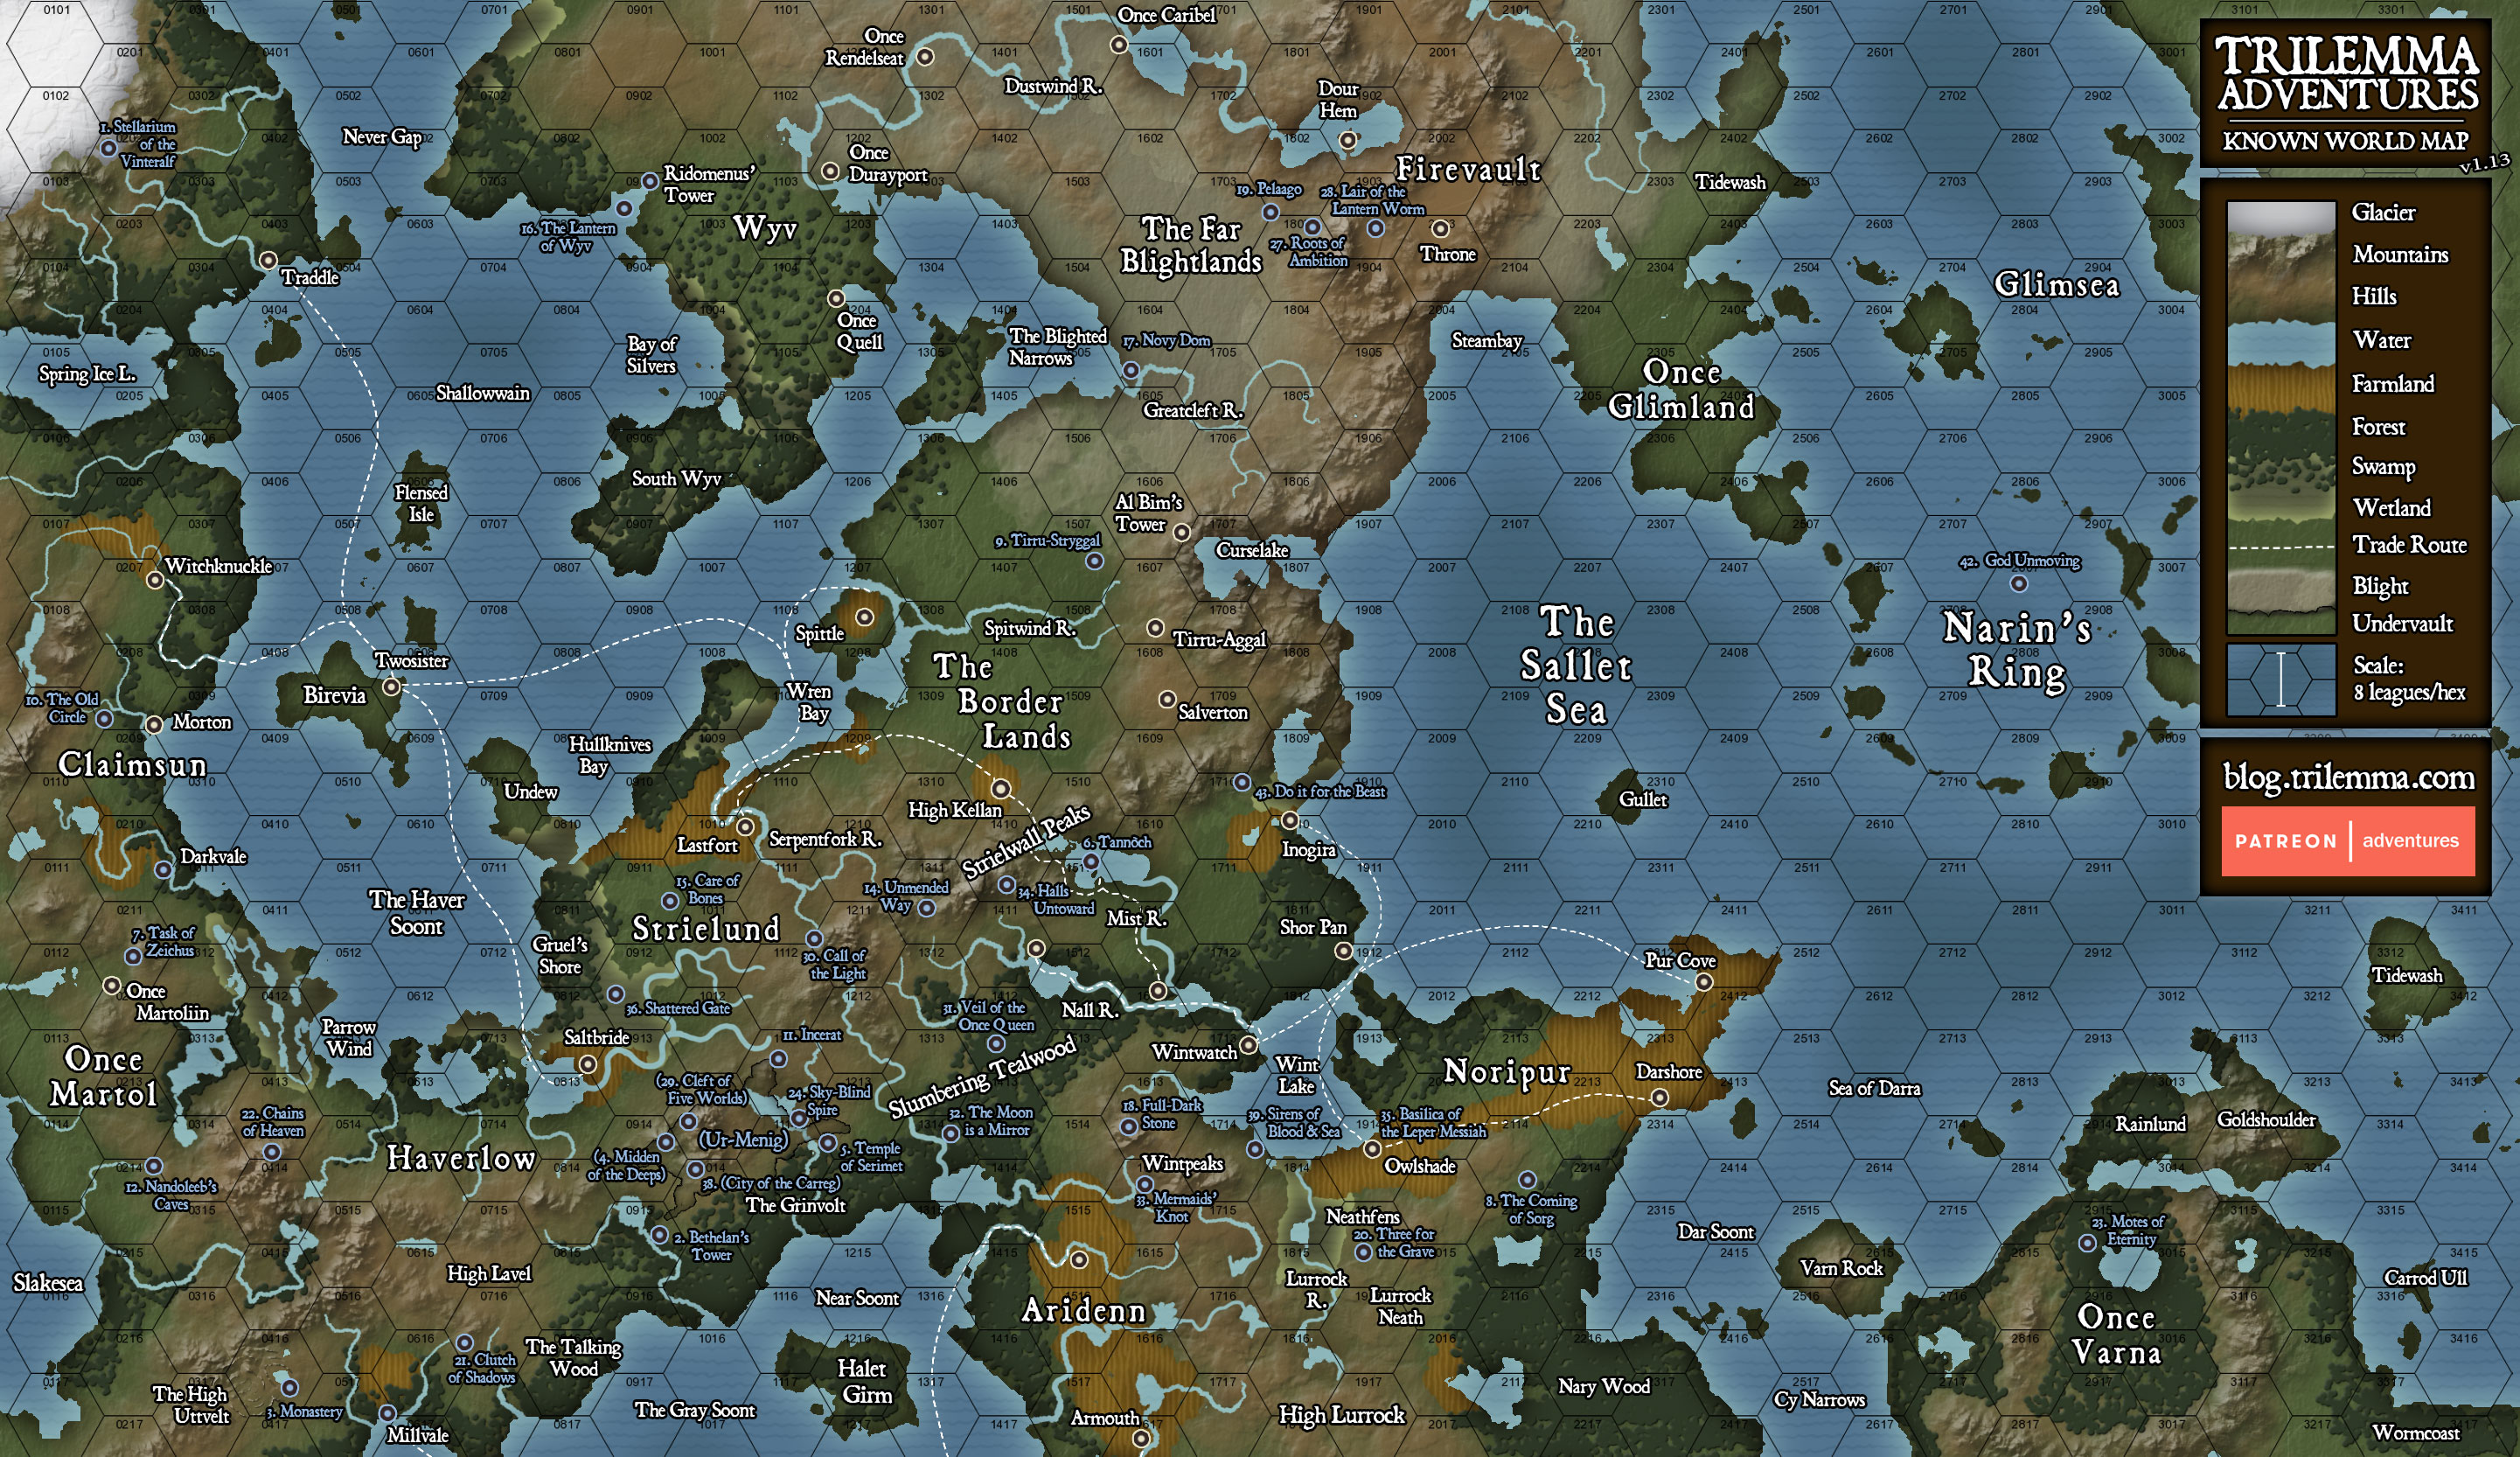 Trilemma adventures trilemma adventures known world map i will eventually detail the cultures and history of the place although even once ive done that i expect that most people will take the adventures and gumiabroncs Image collections